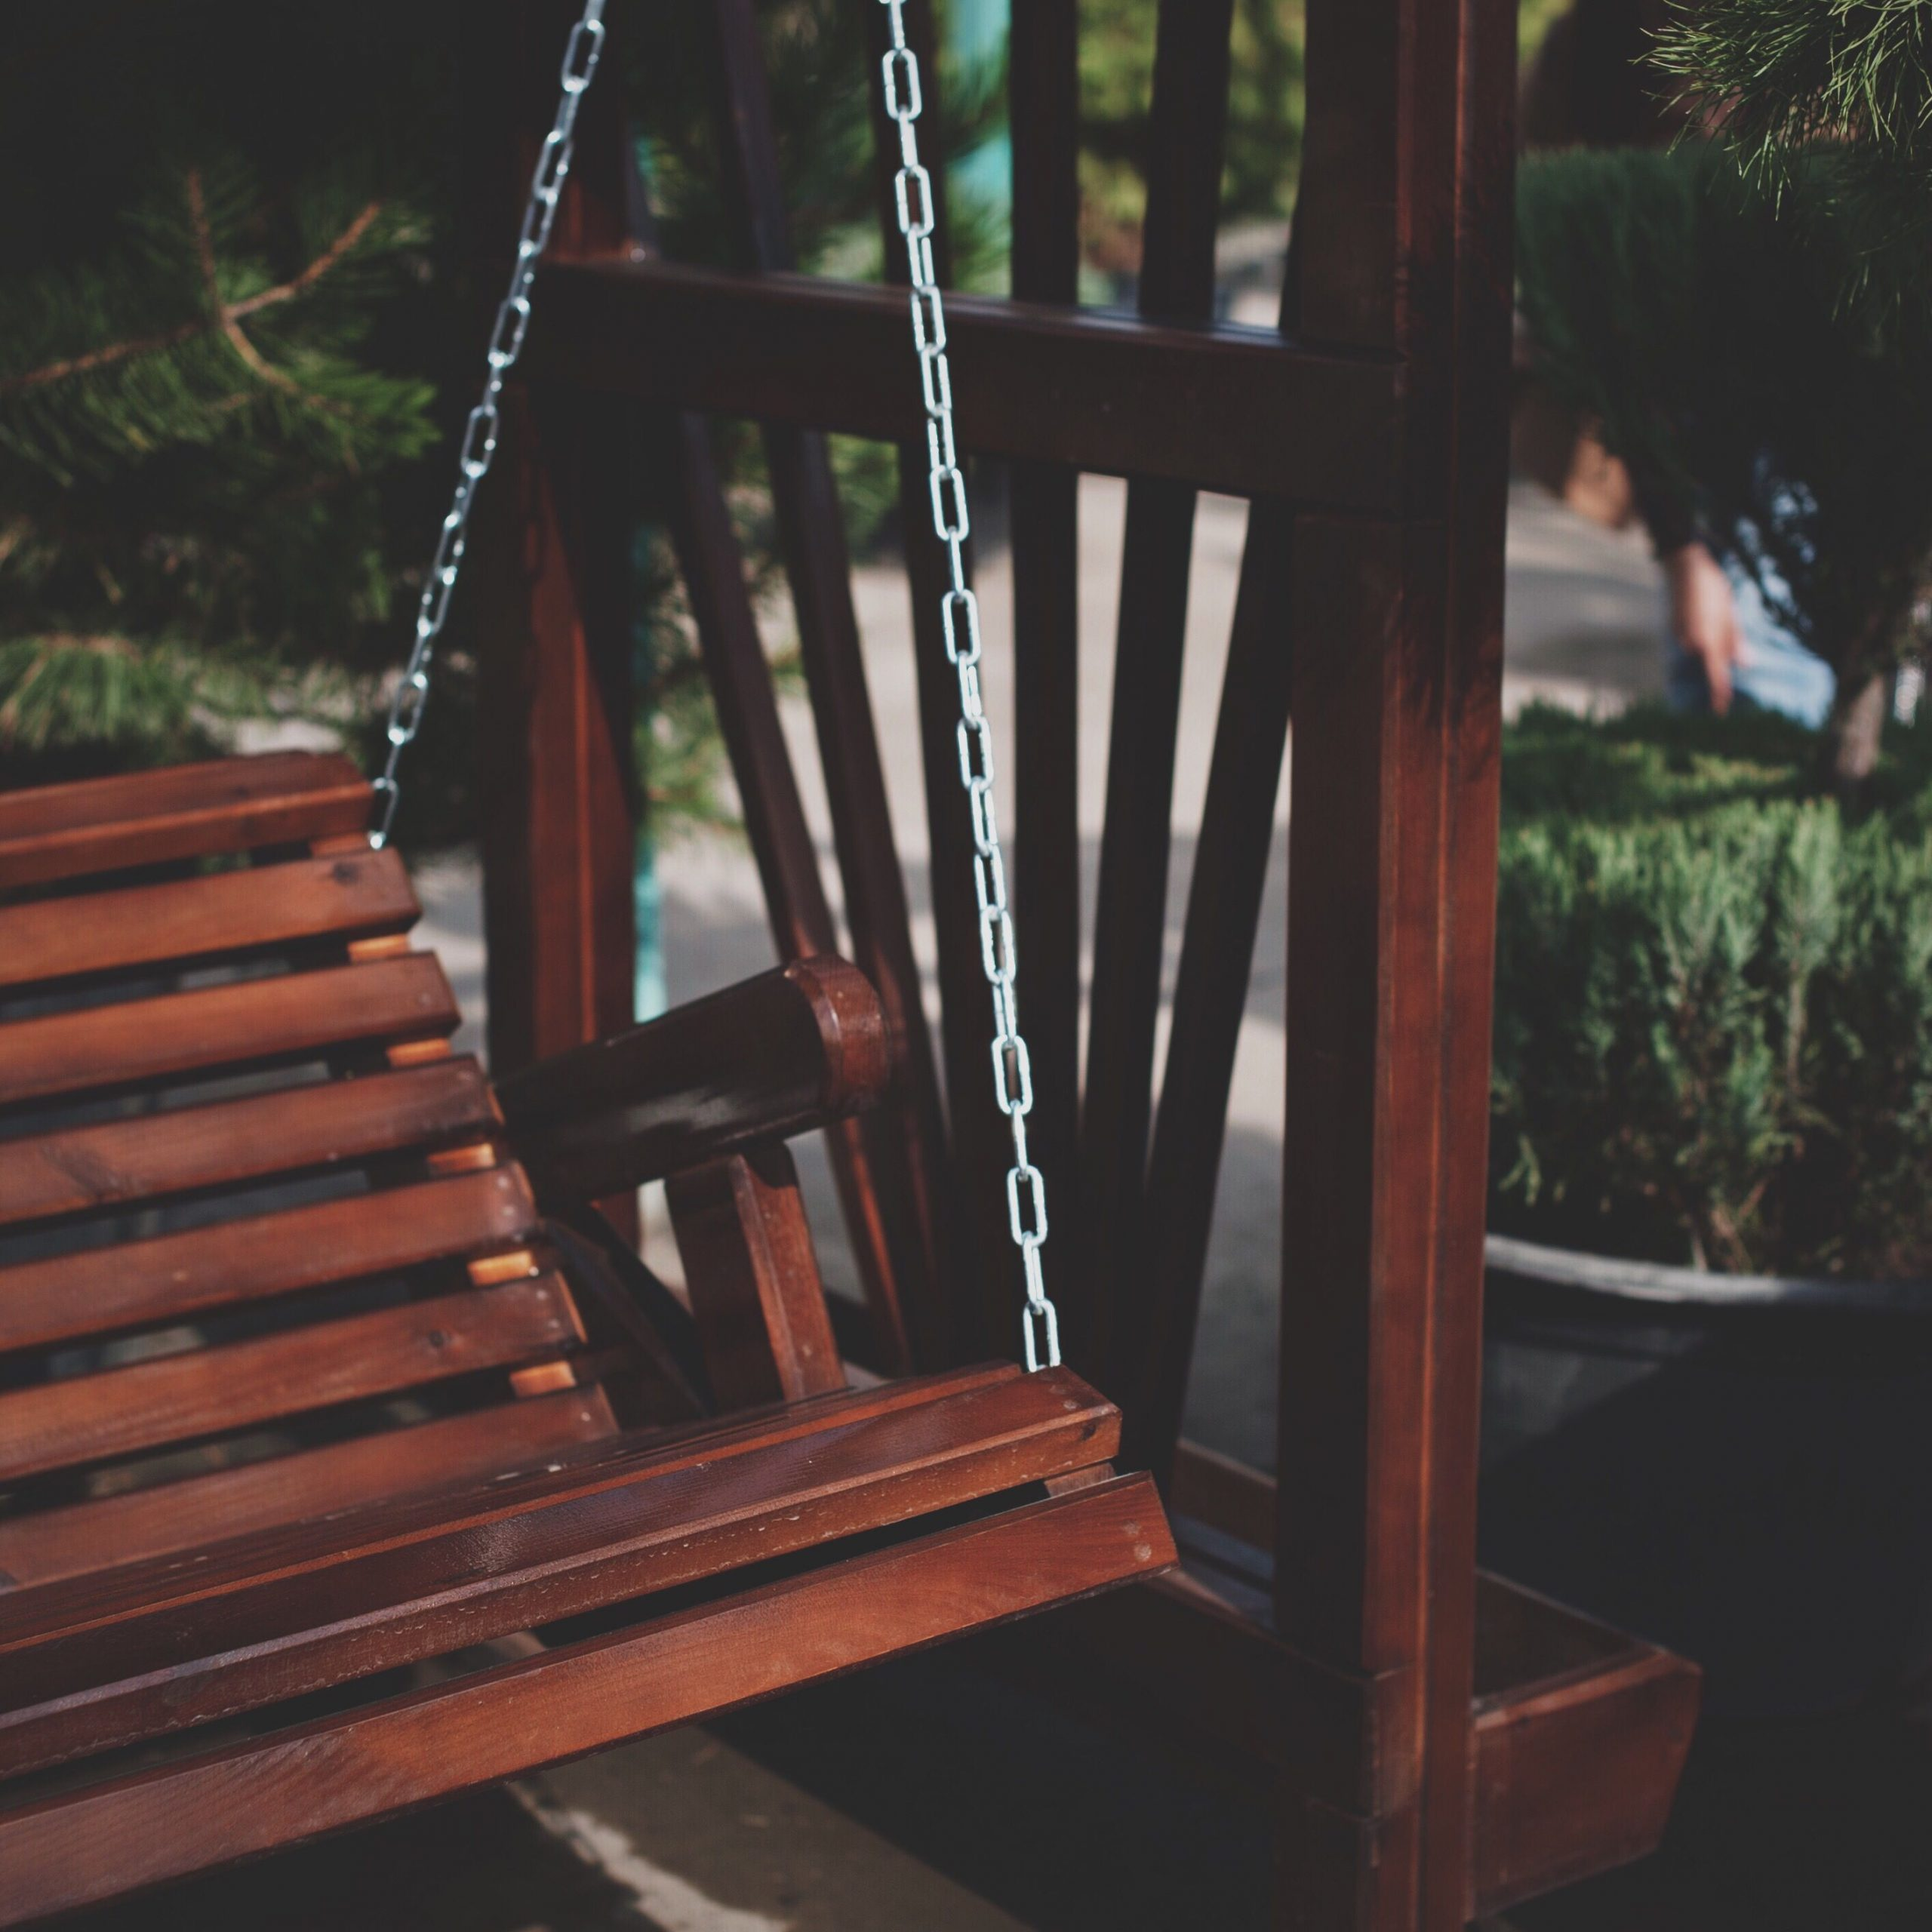 How To Up Your Garden And Outdoor Lighting Game | Outdoor Intended For Lamp Outdoor Porch Swings (View 7 of 25)